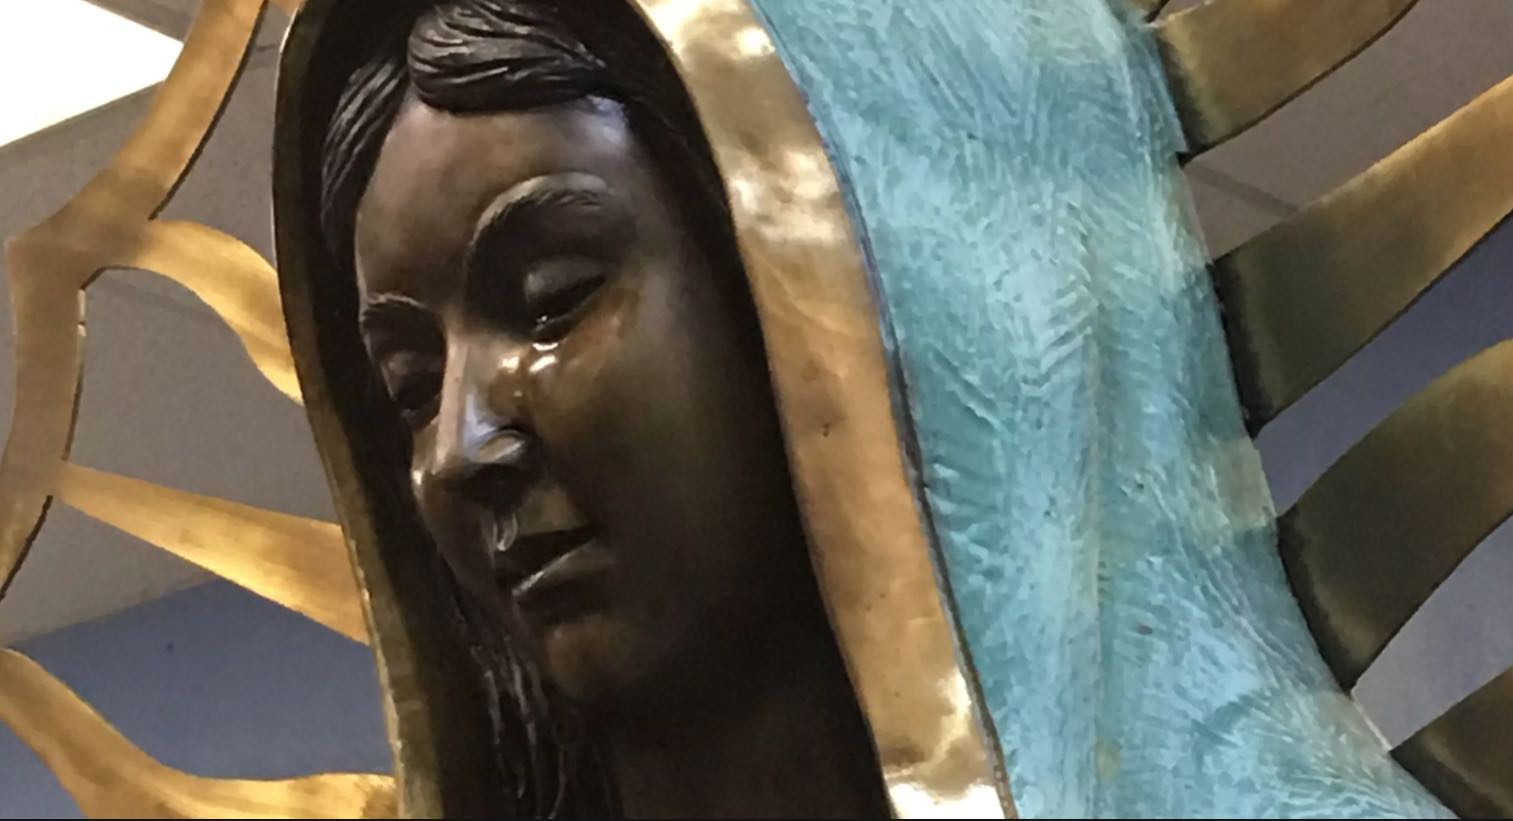 Virgin Mary statue 'weeping olive oil' (Watch)